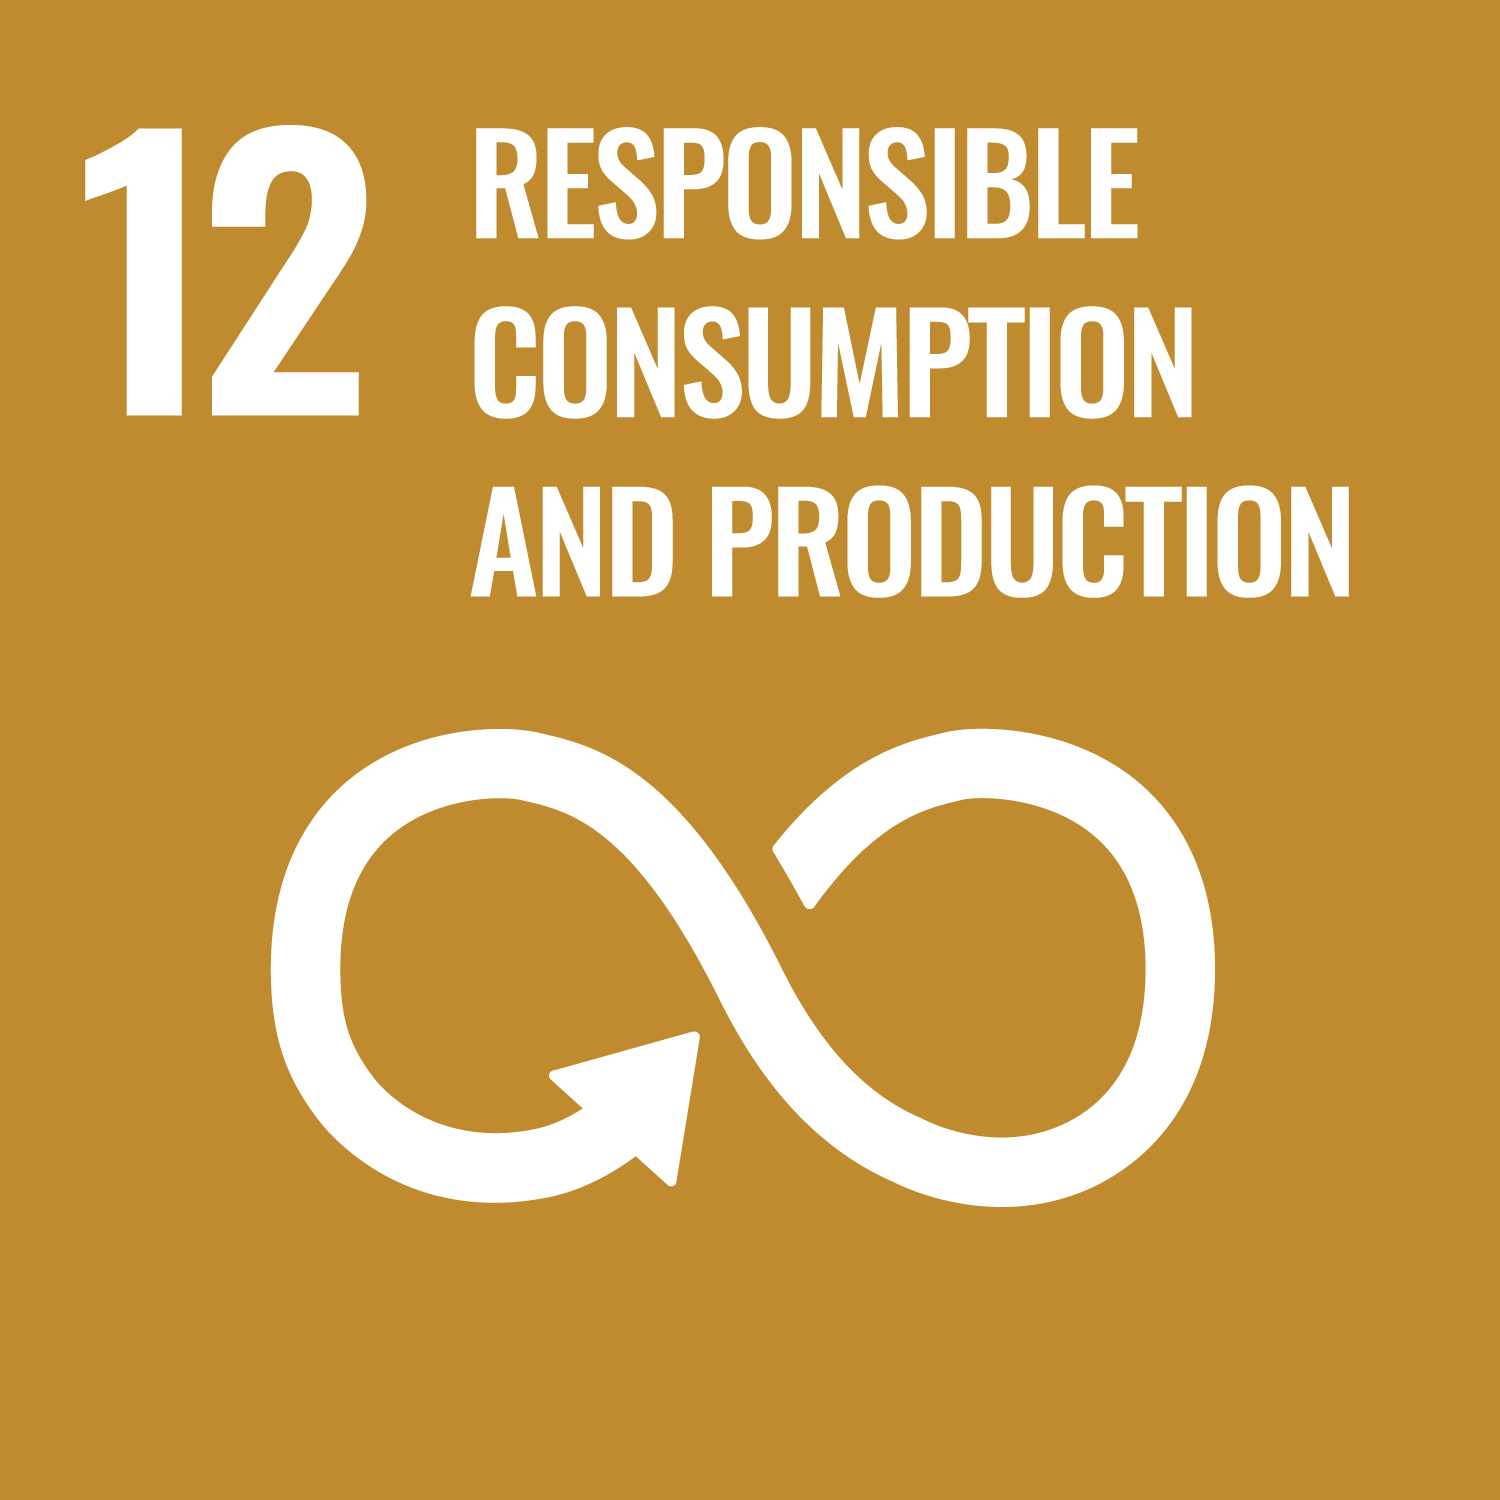 UN sustainable development goal number 12 Responsible consumtion and production. Link to goal number 12.